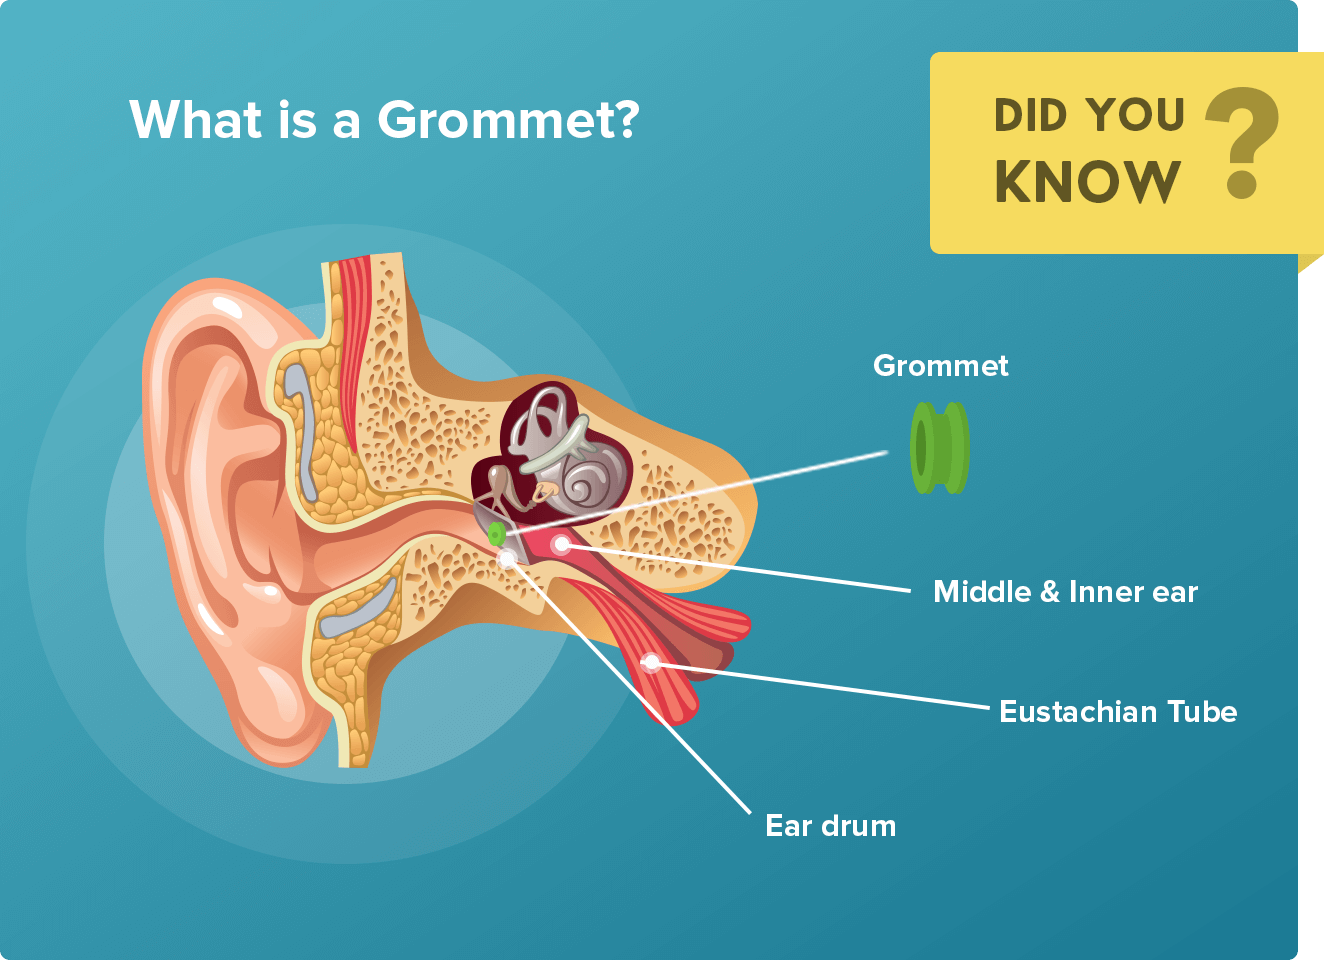 Grommet in ear diagram